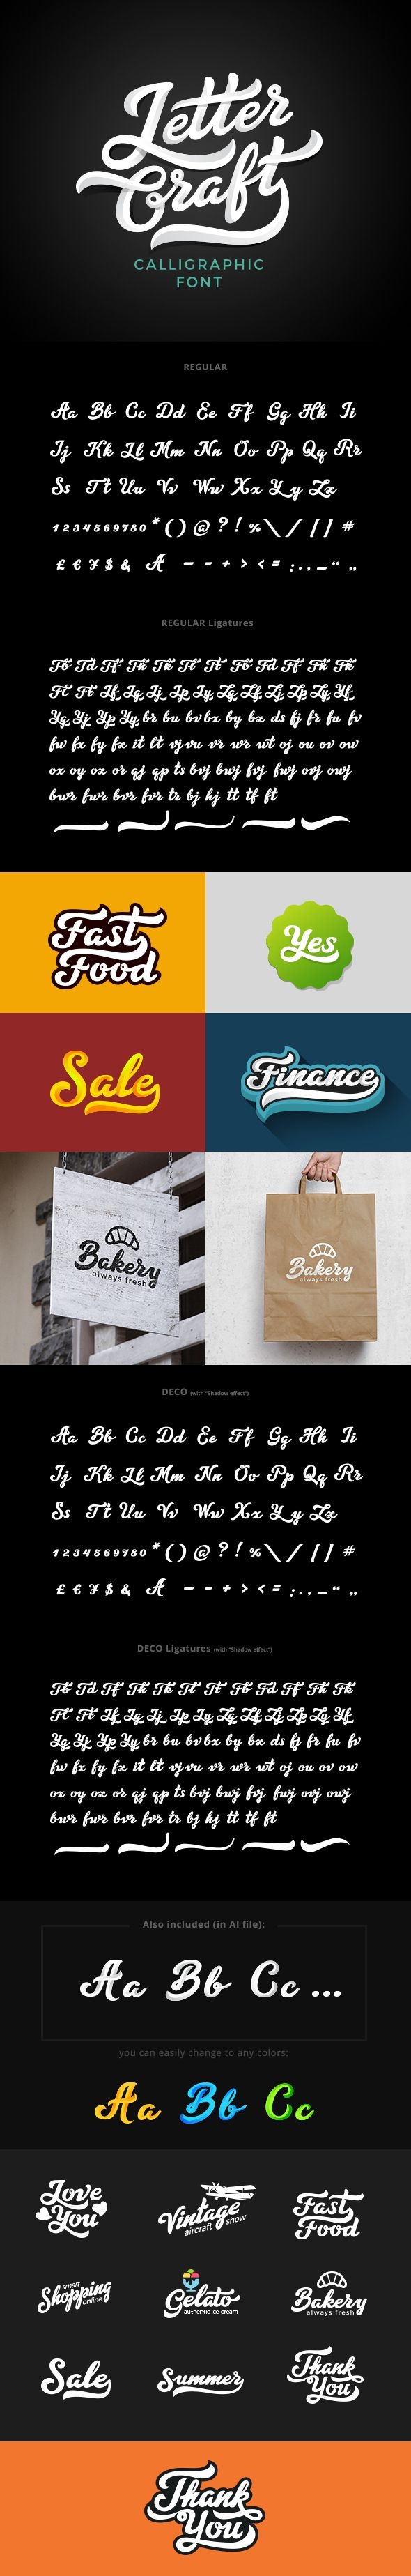 Letter Craft Font — TrueType TTF #calligraphic #coffee • Available here → https://graphicriver.net/item/letter-craft-font/19901615?ref=pxcr